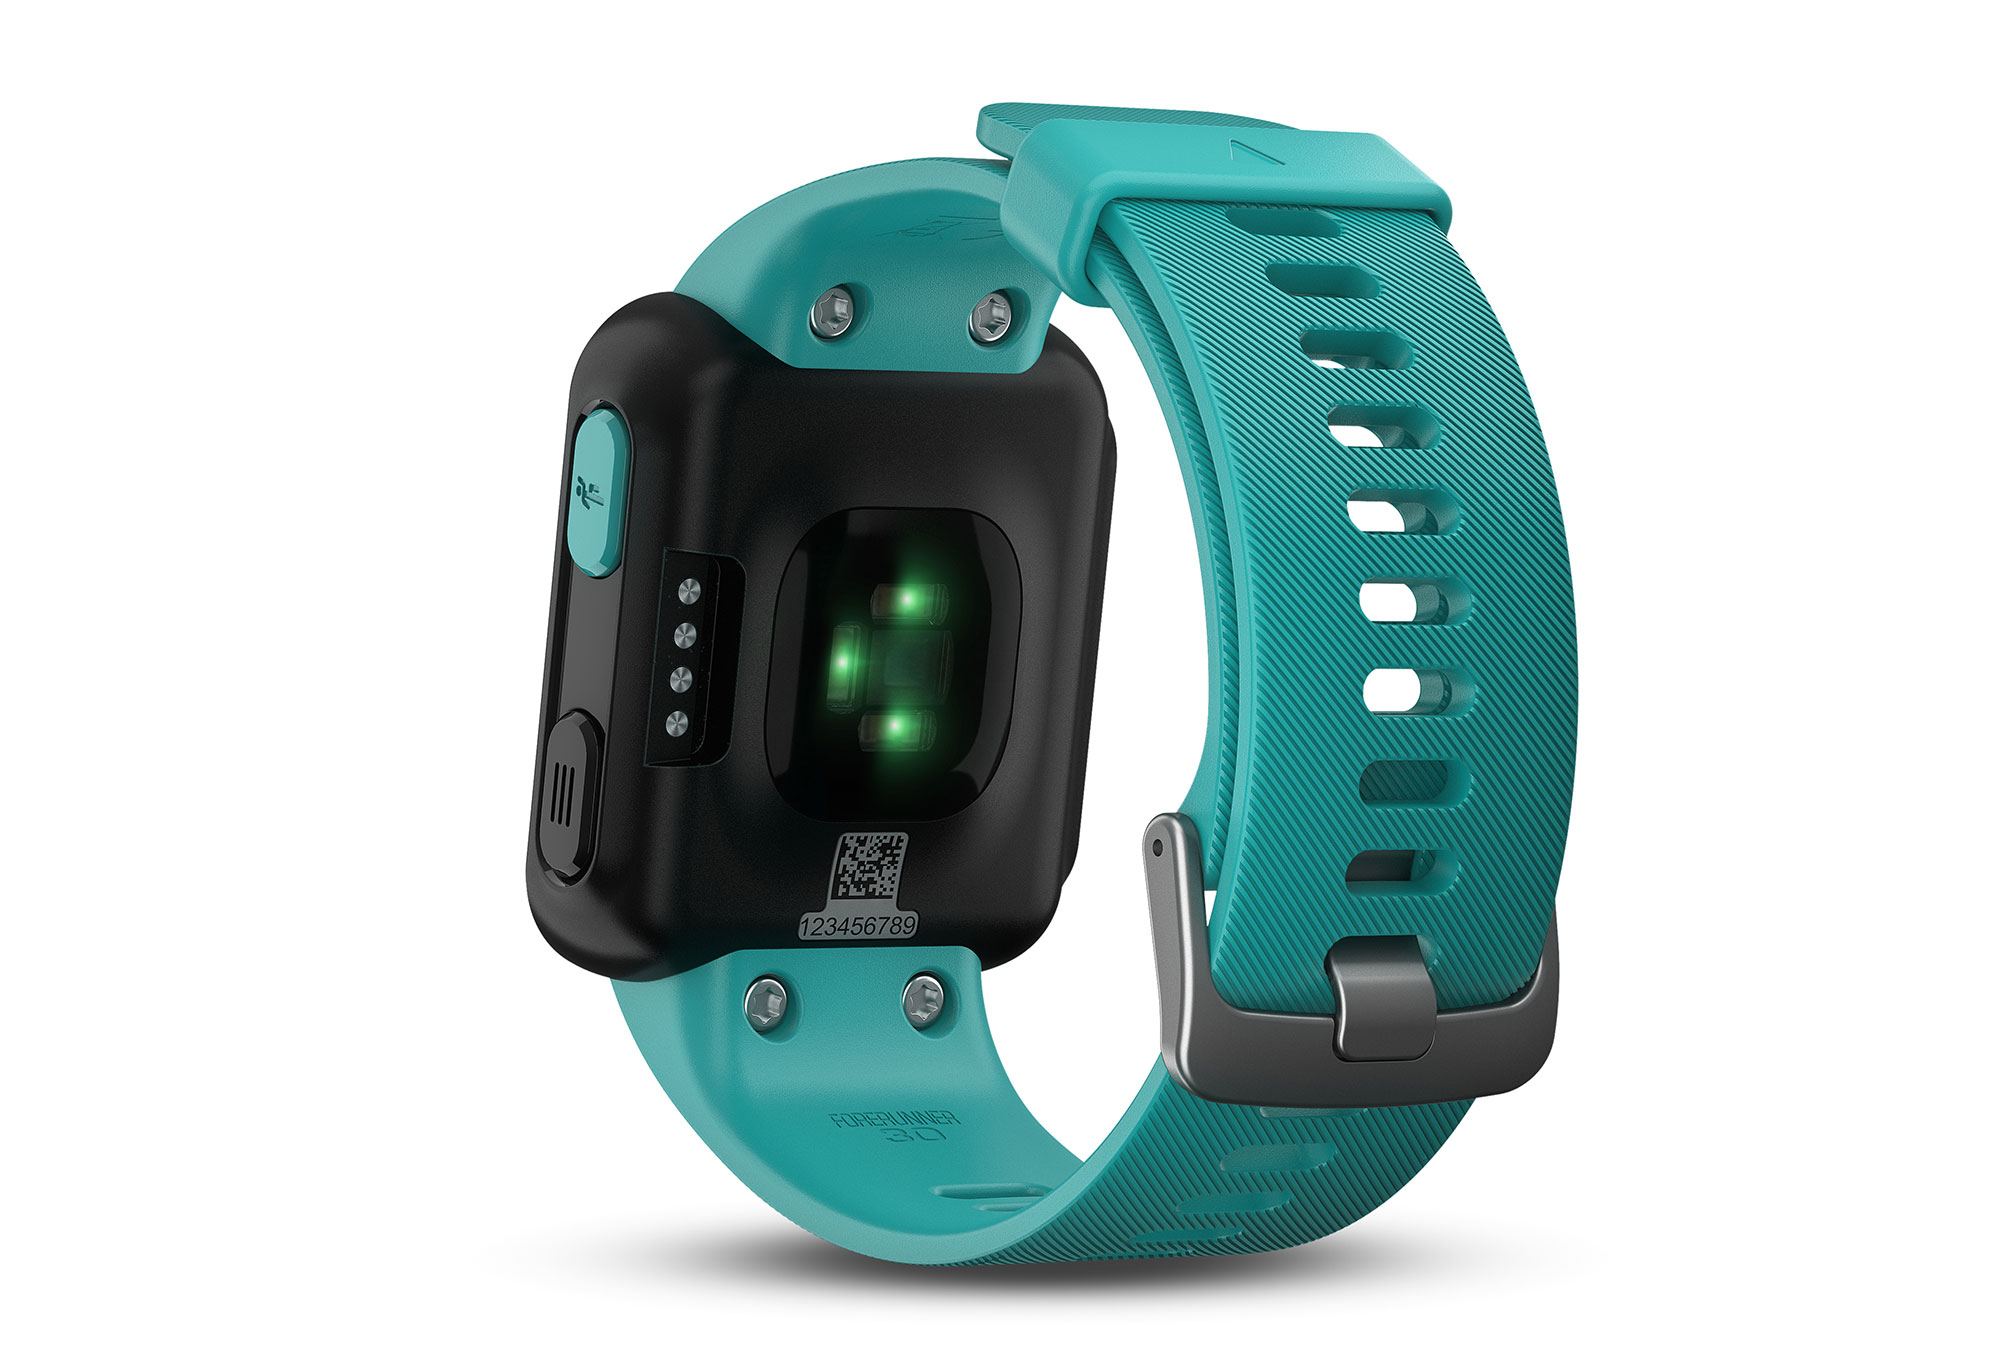 montre gps garmin forerunner 30 bleu turquoise. Black Bedroom Furniture Sets. Home Design Ideas